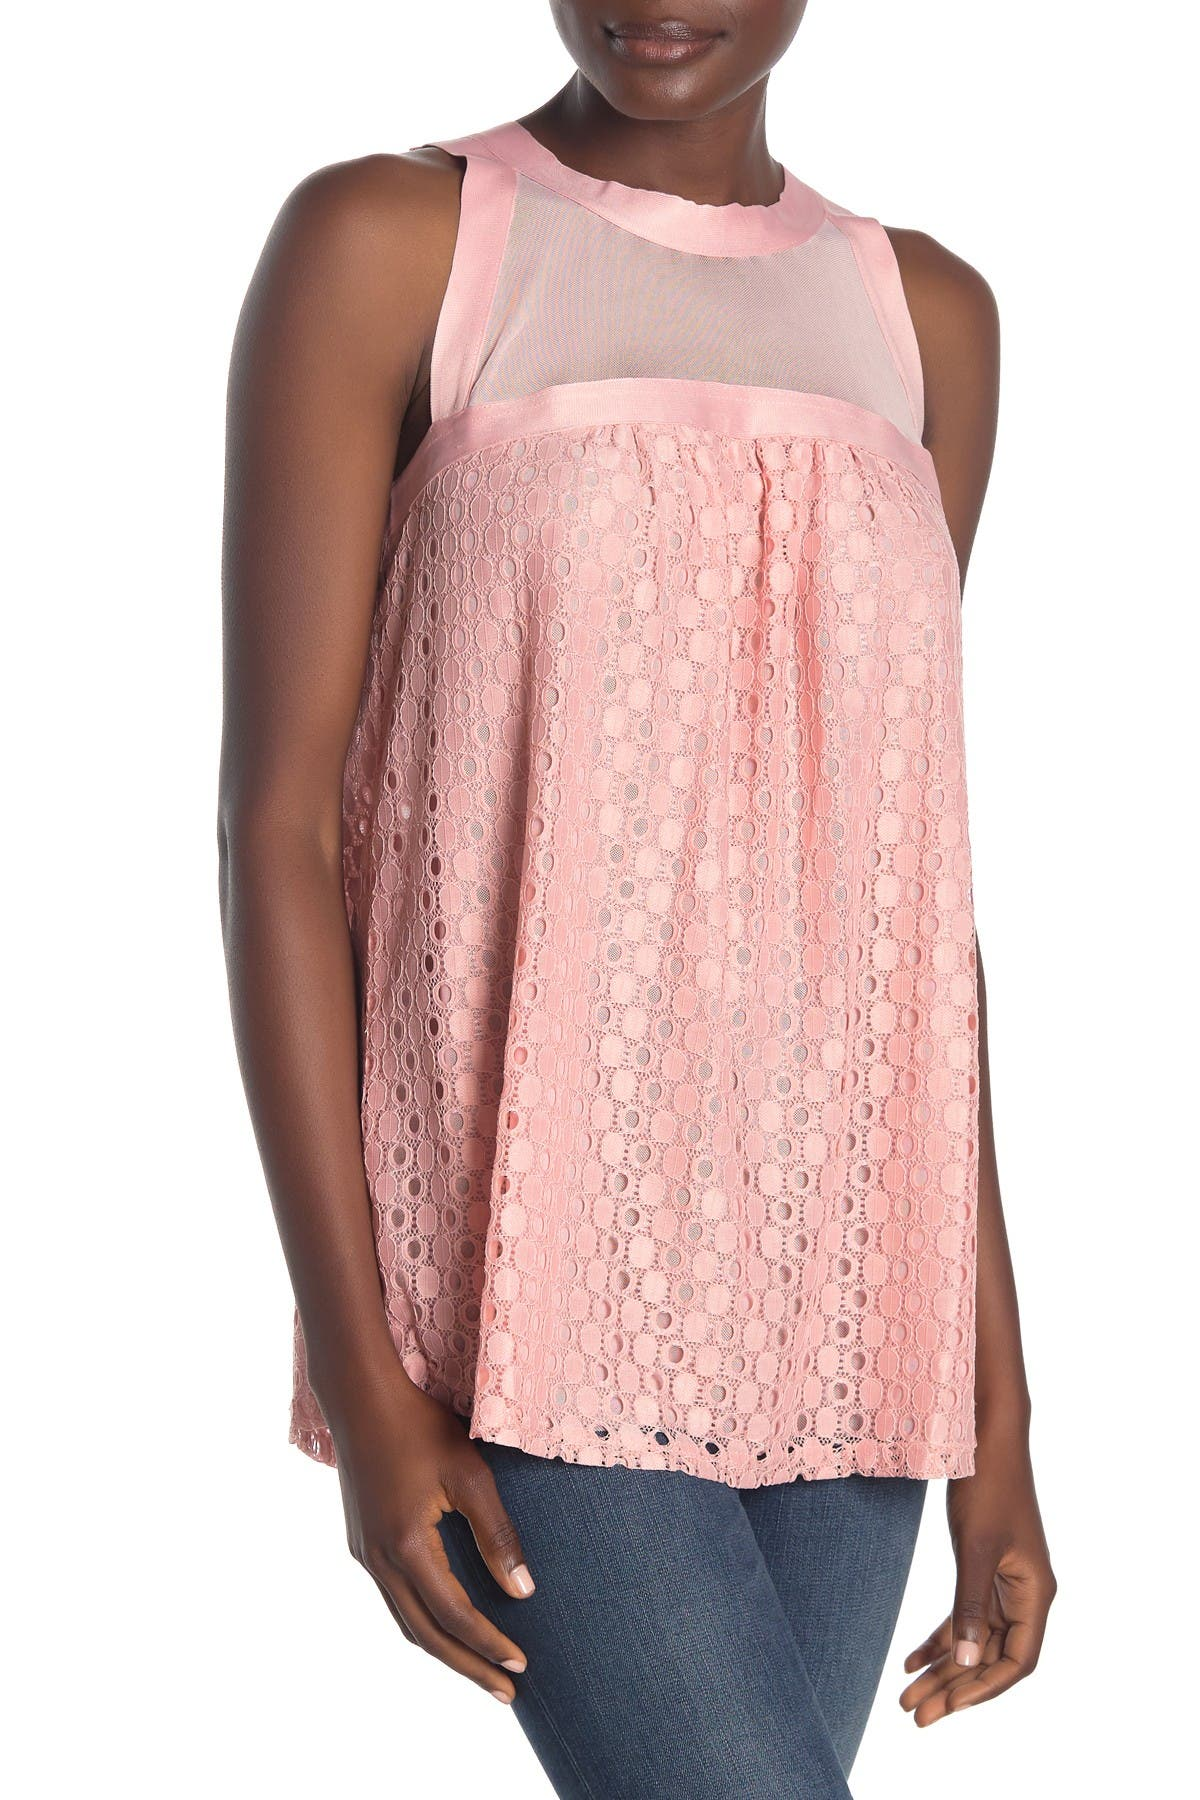 Image of Forgotten Grace Lace Mesh Tank Top